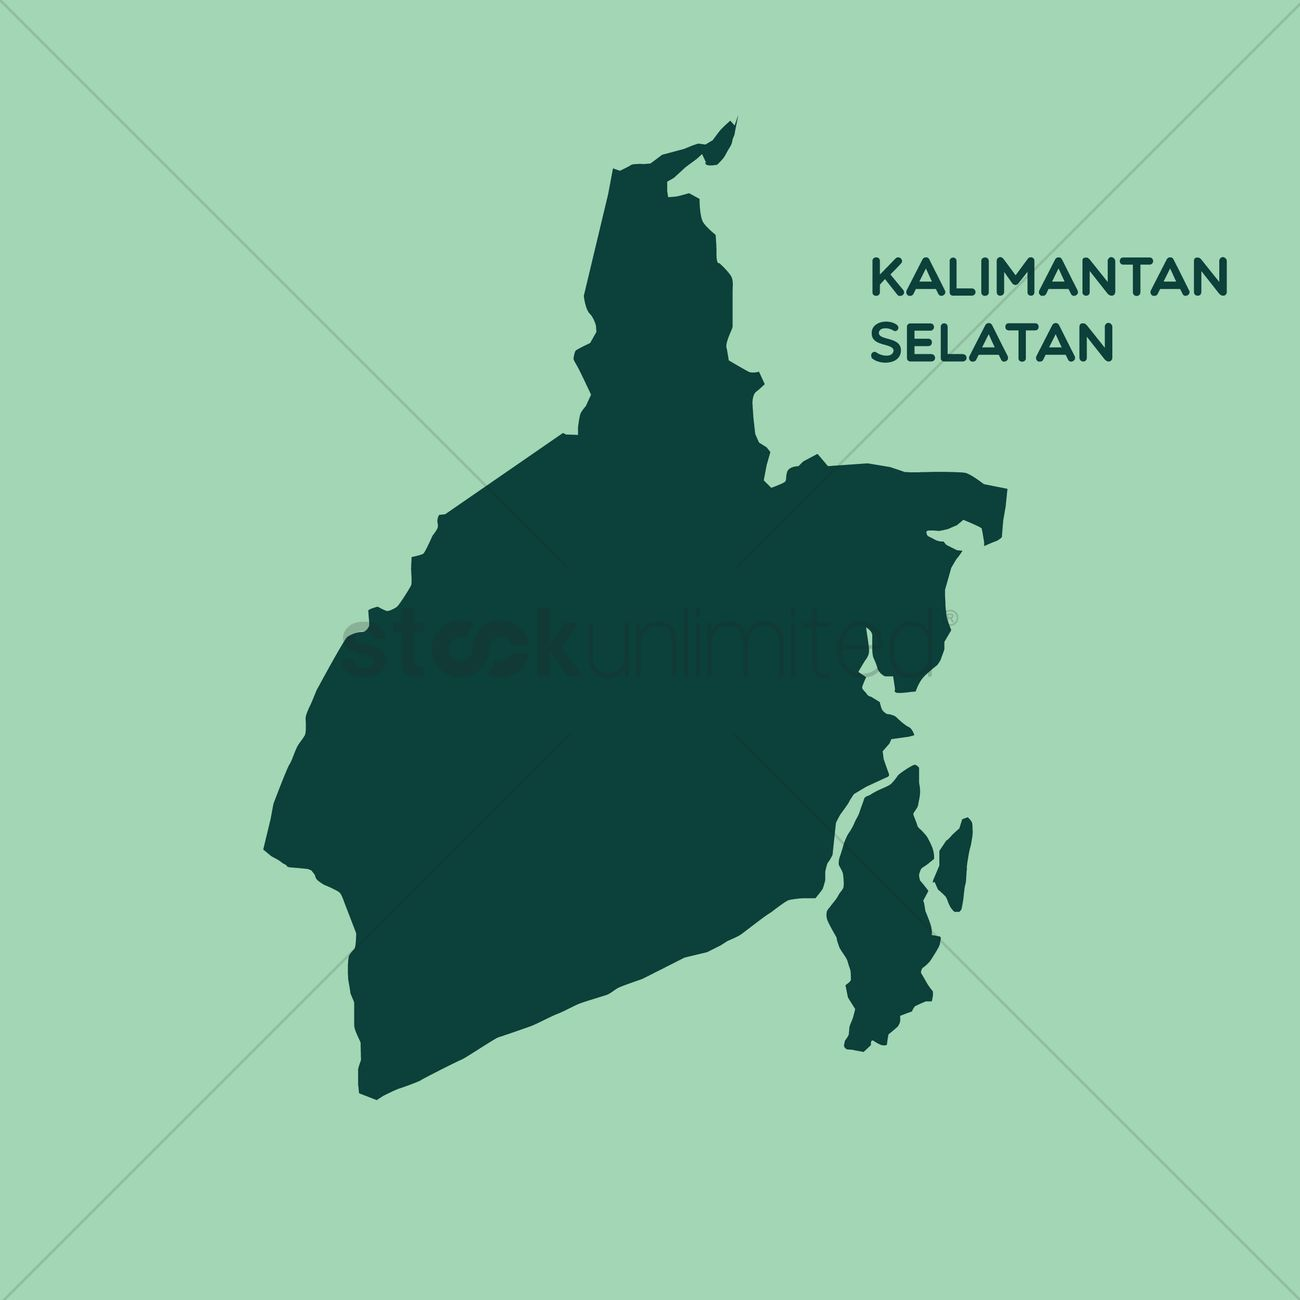 map of kalimantan selatan vector image 1480450 stockunlimited map of kalimantan selatan vector image